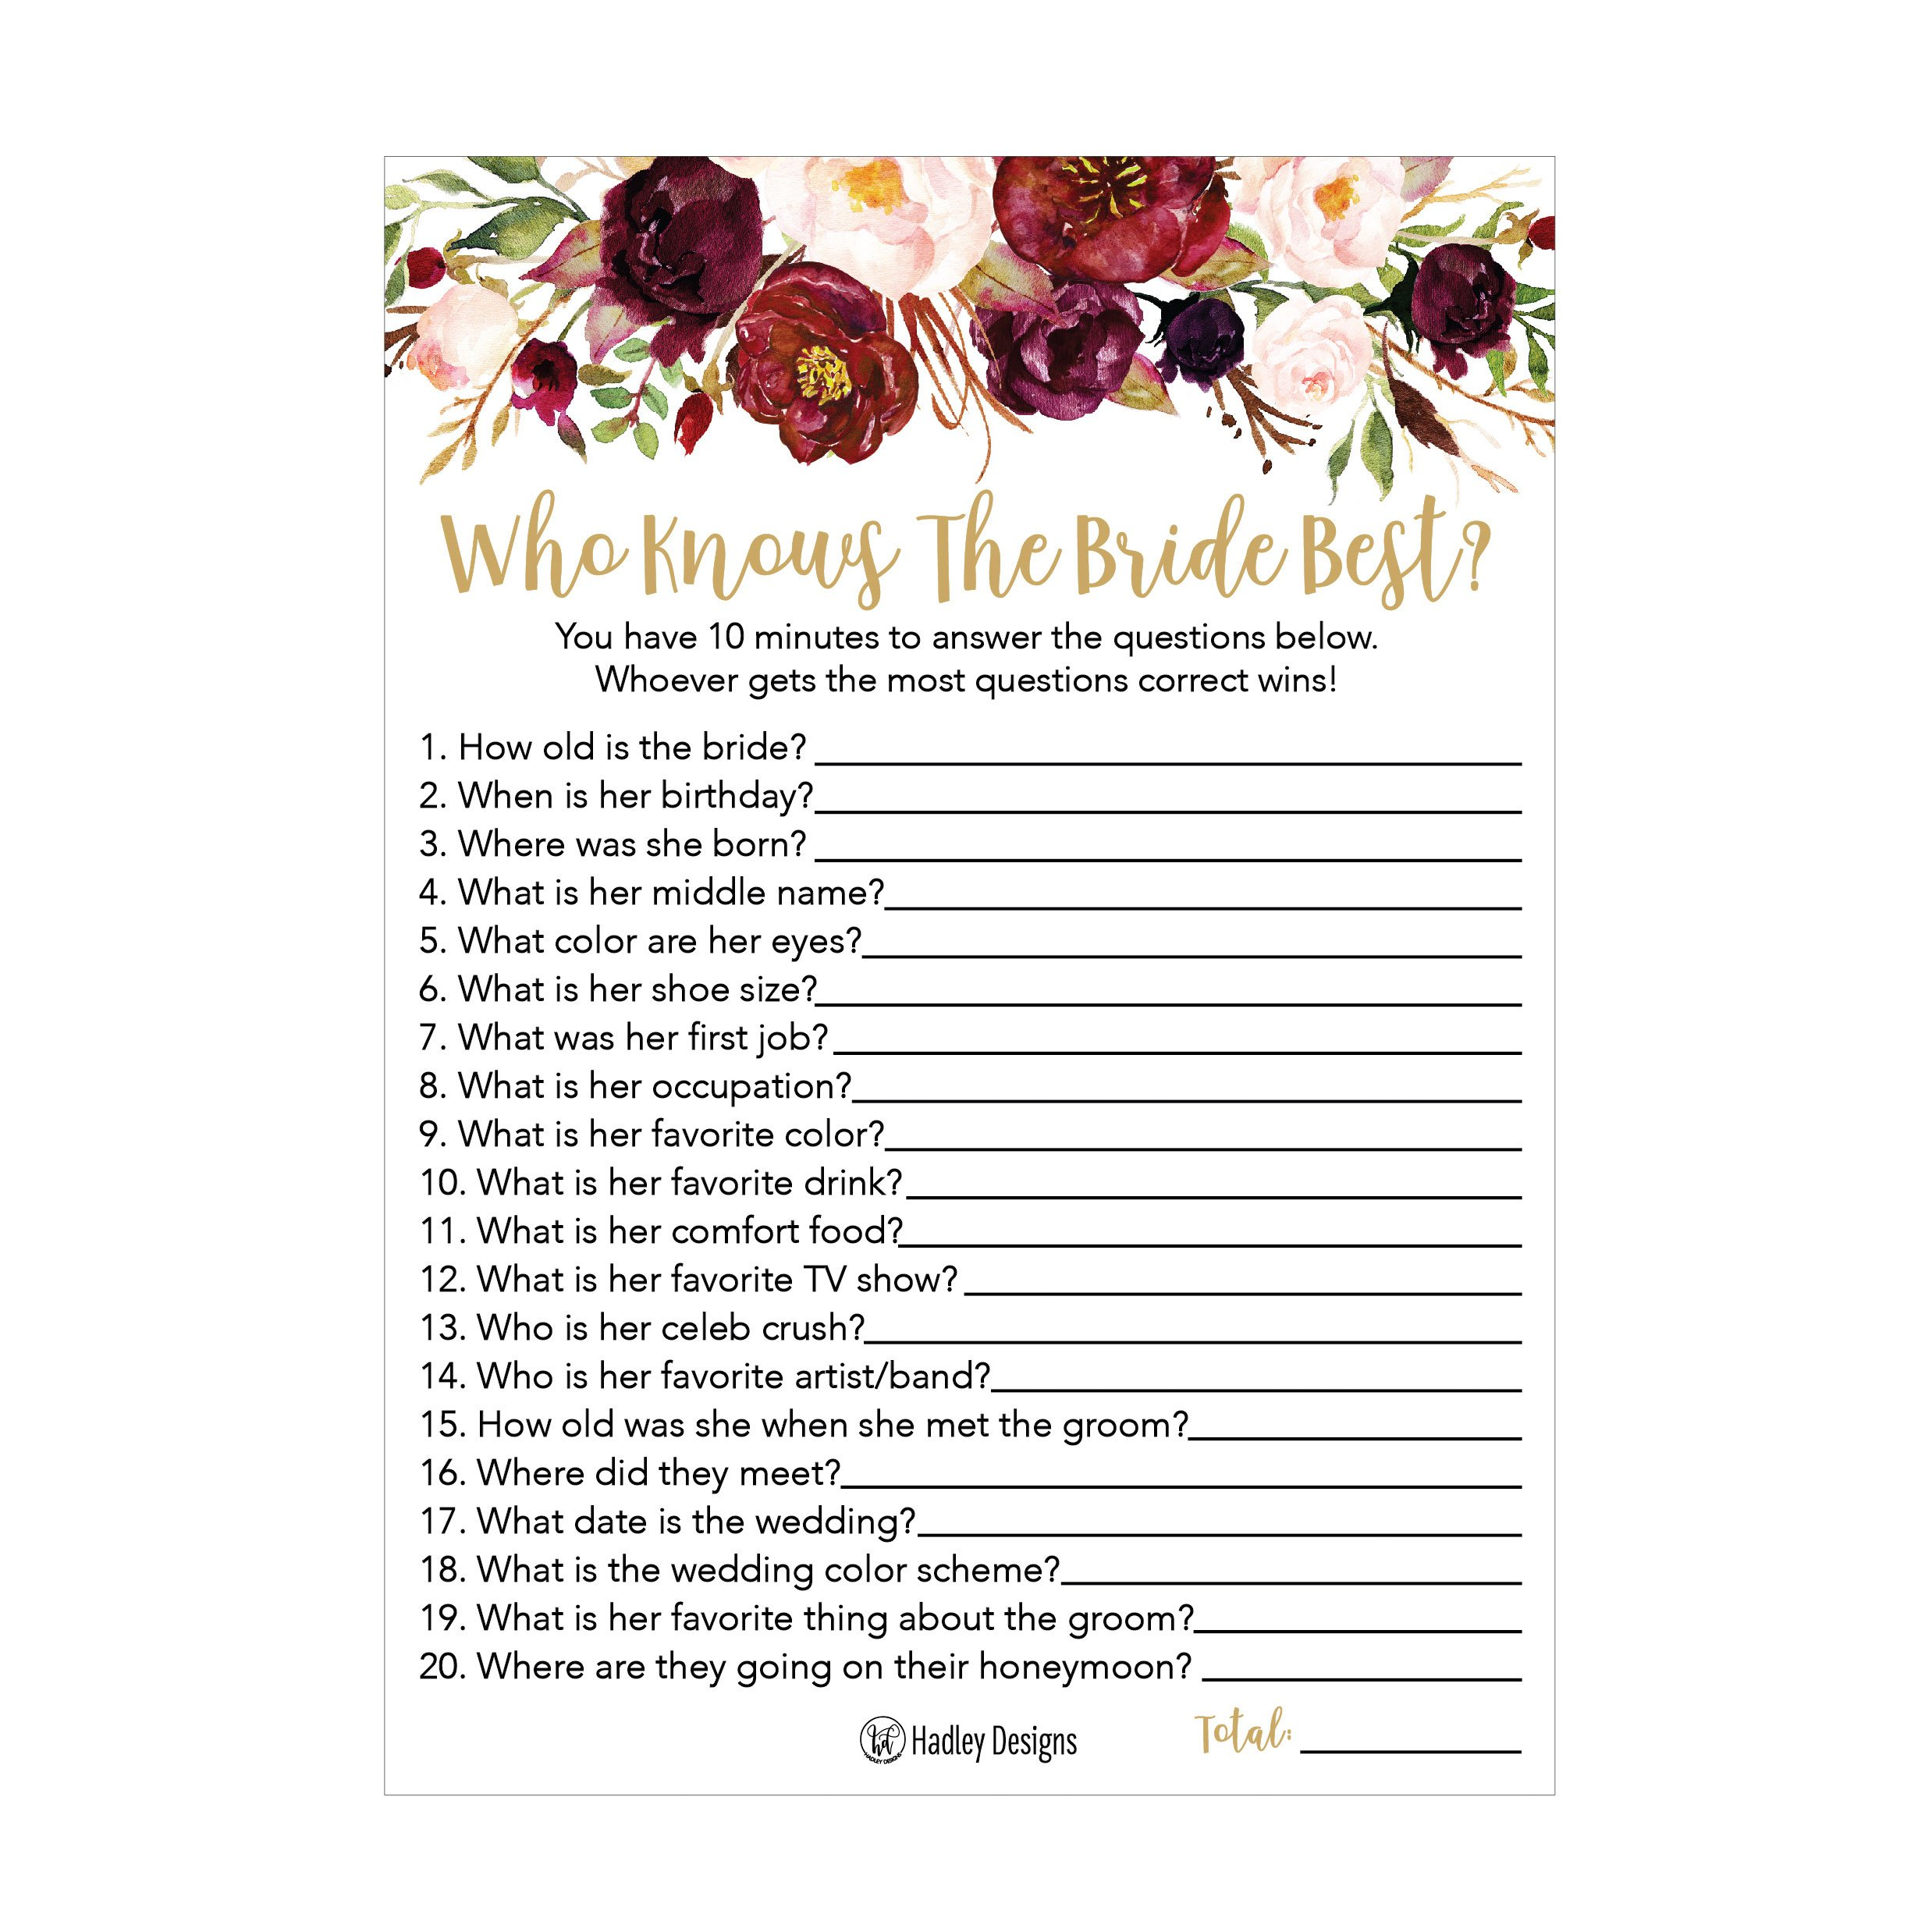 25 Cute Flowers How Well Do You Know The Bride Bridal Wedding Shower or Bachelorette Party Game Floral Who Knows The Best Does The Groom Couples Guessing Question Set of Cards Pack Printed Engagement